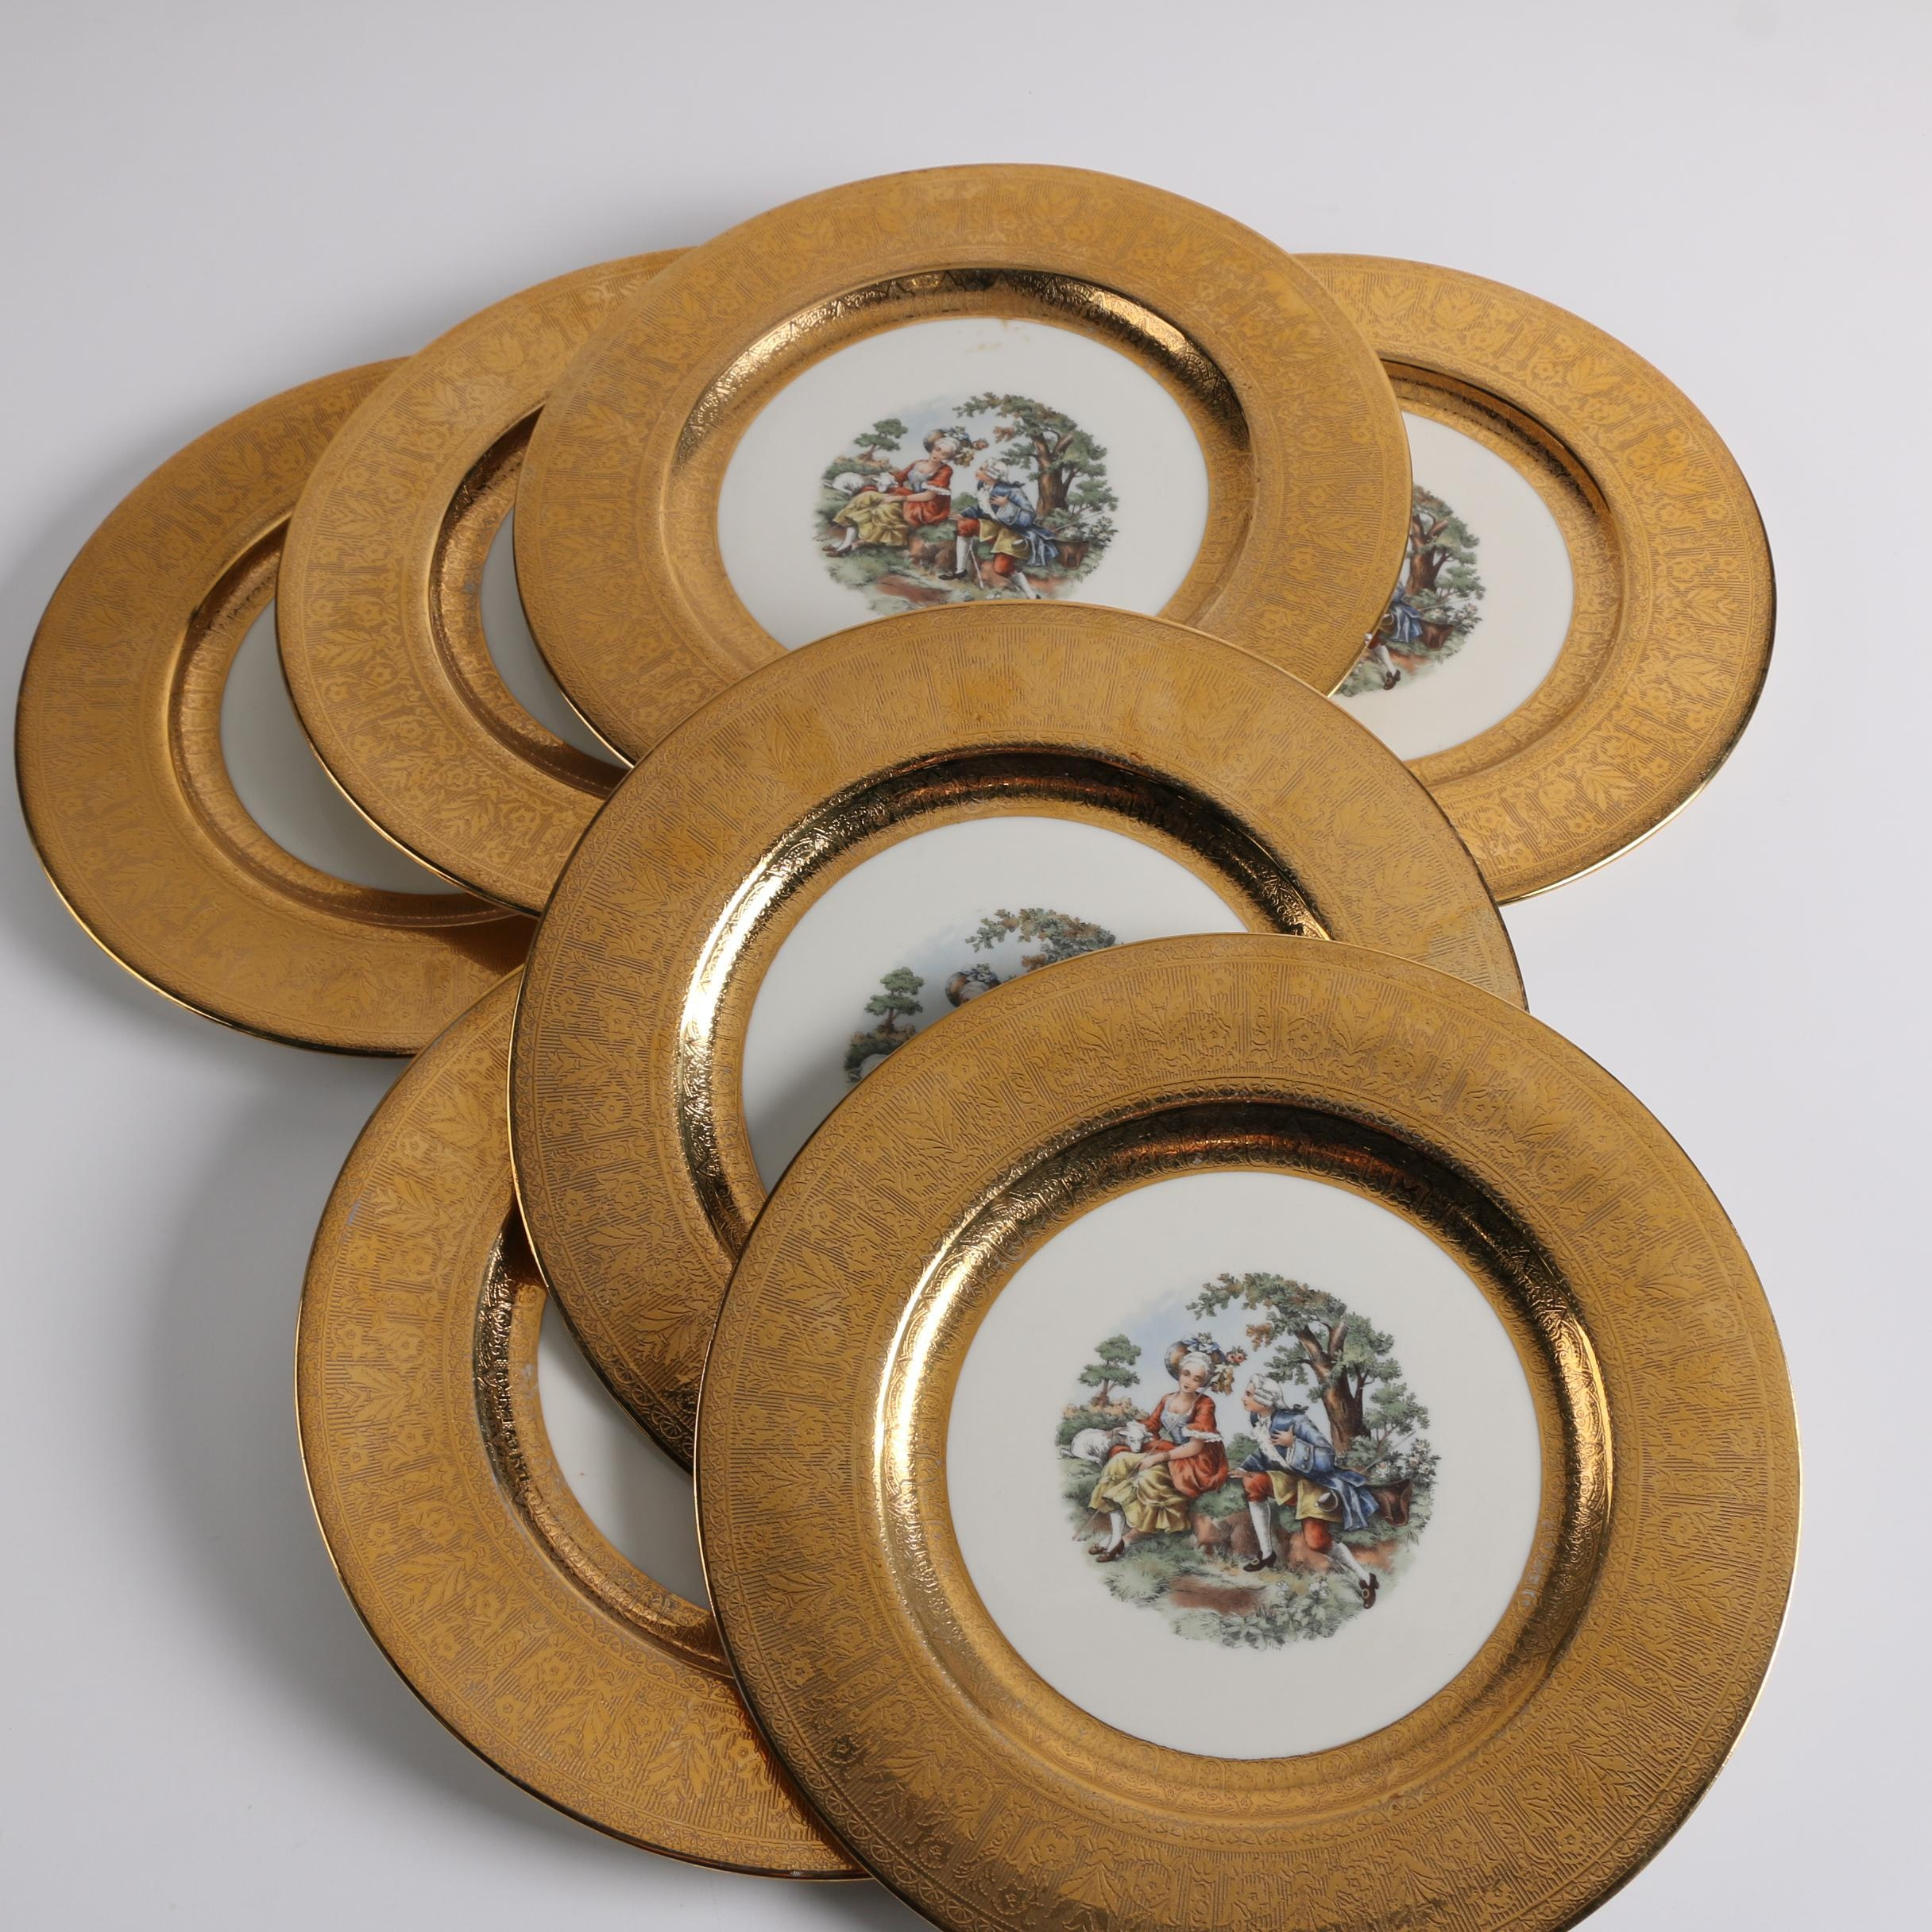 Vintage La Petite Porcelain Plates with Gold Encrusted Rims